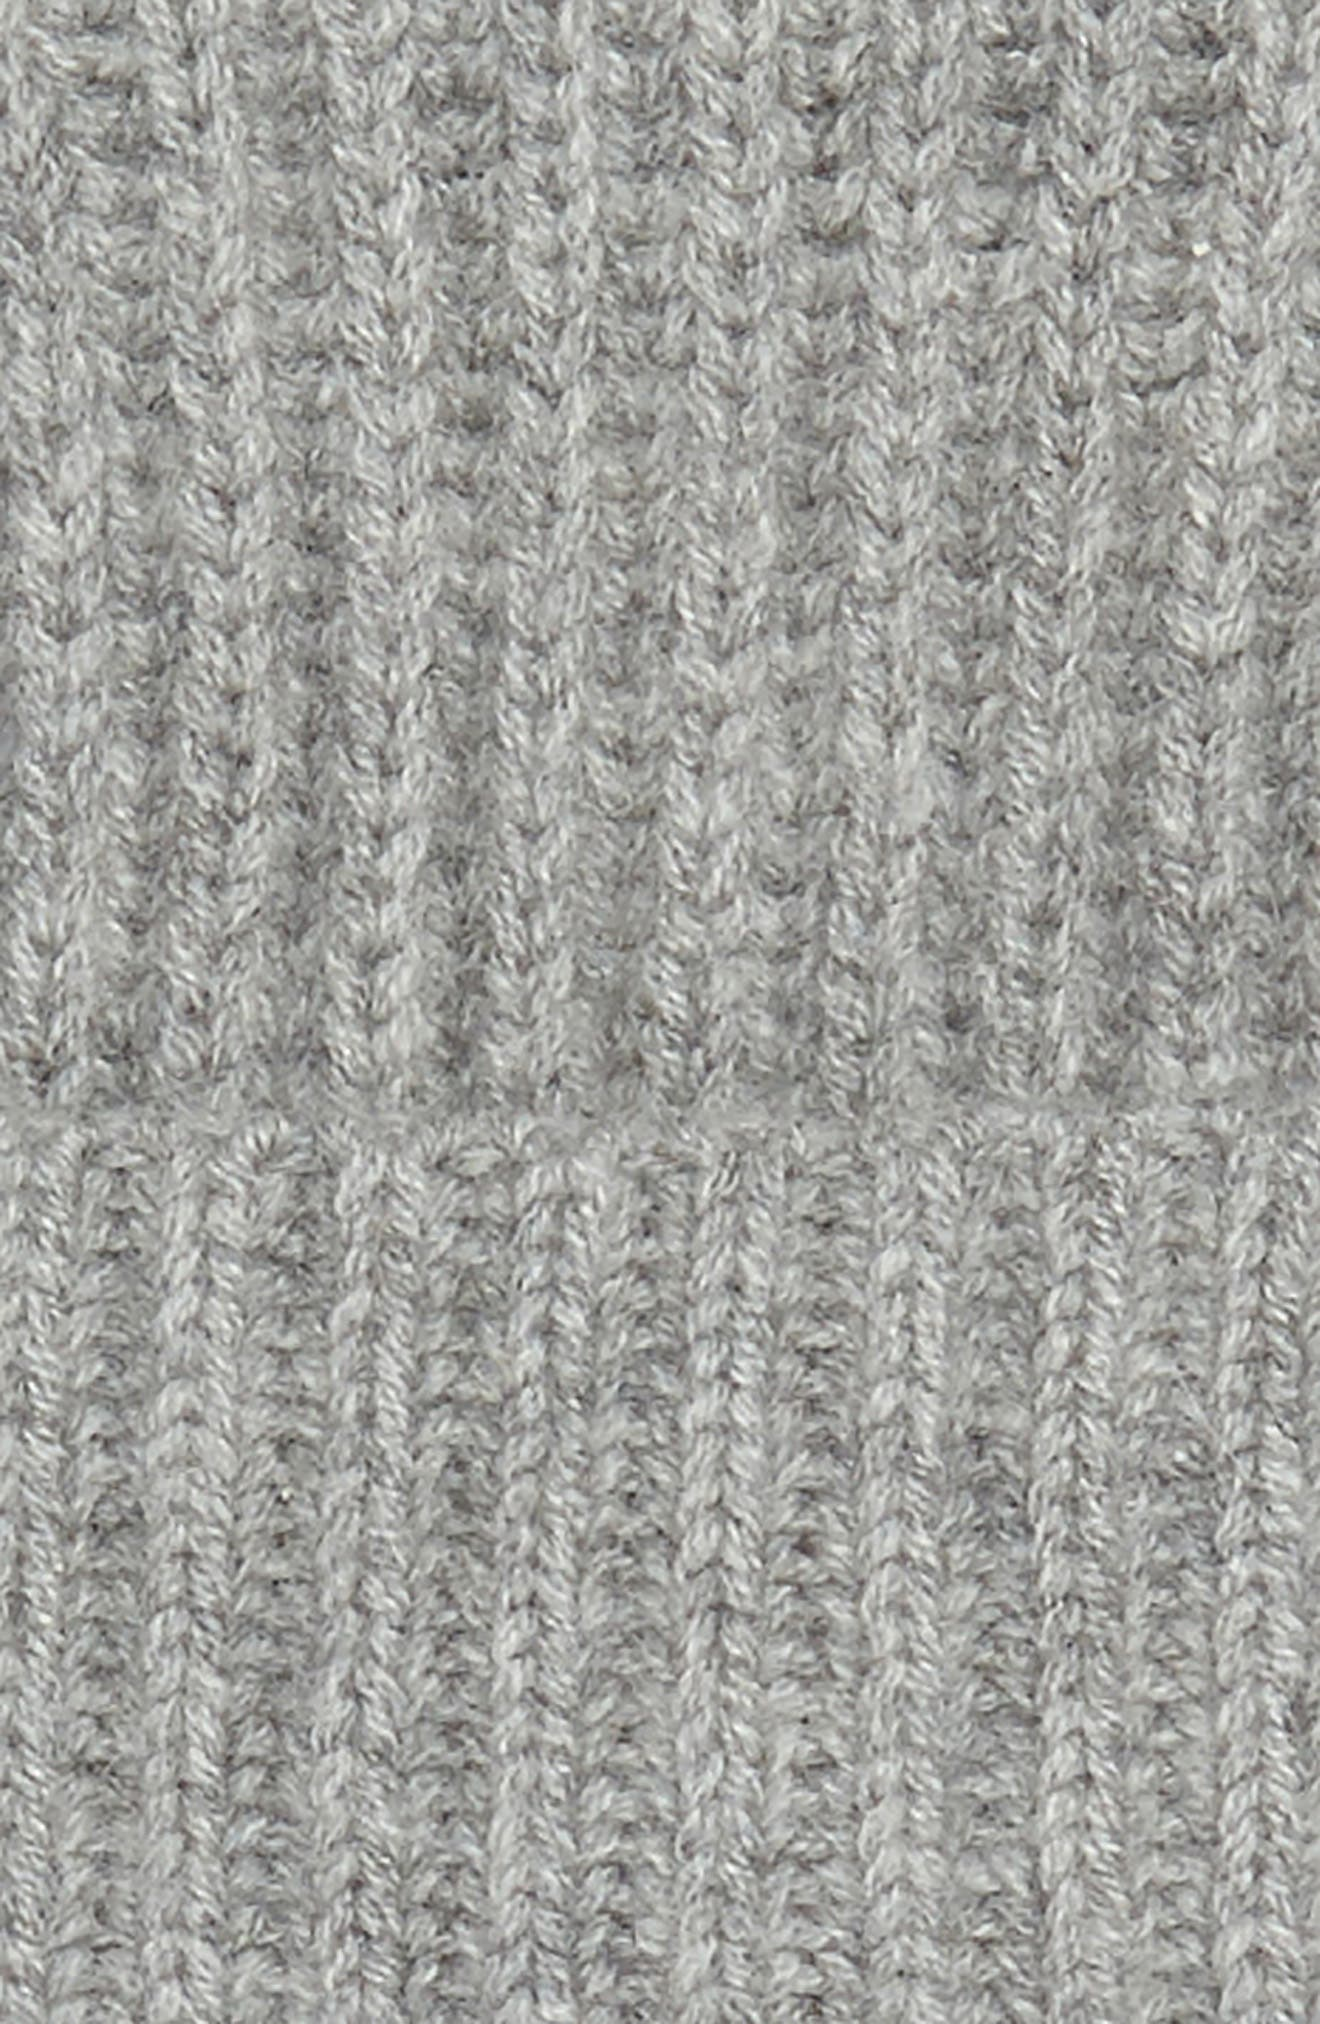 Cashmere Knit Cap,                             Alternate thumbnail 2, color,                             LIGHT GREY HEATHER